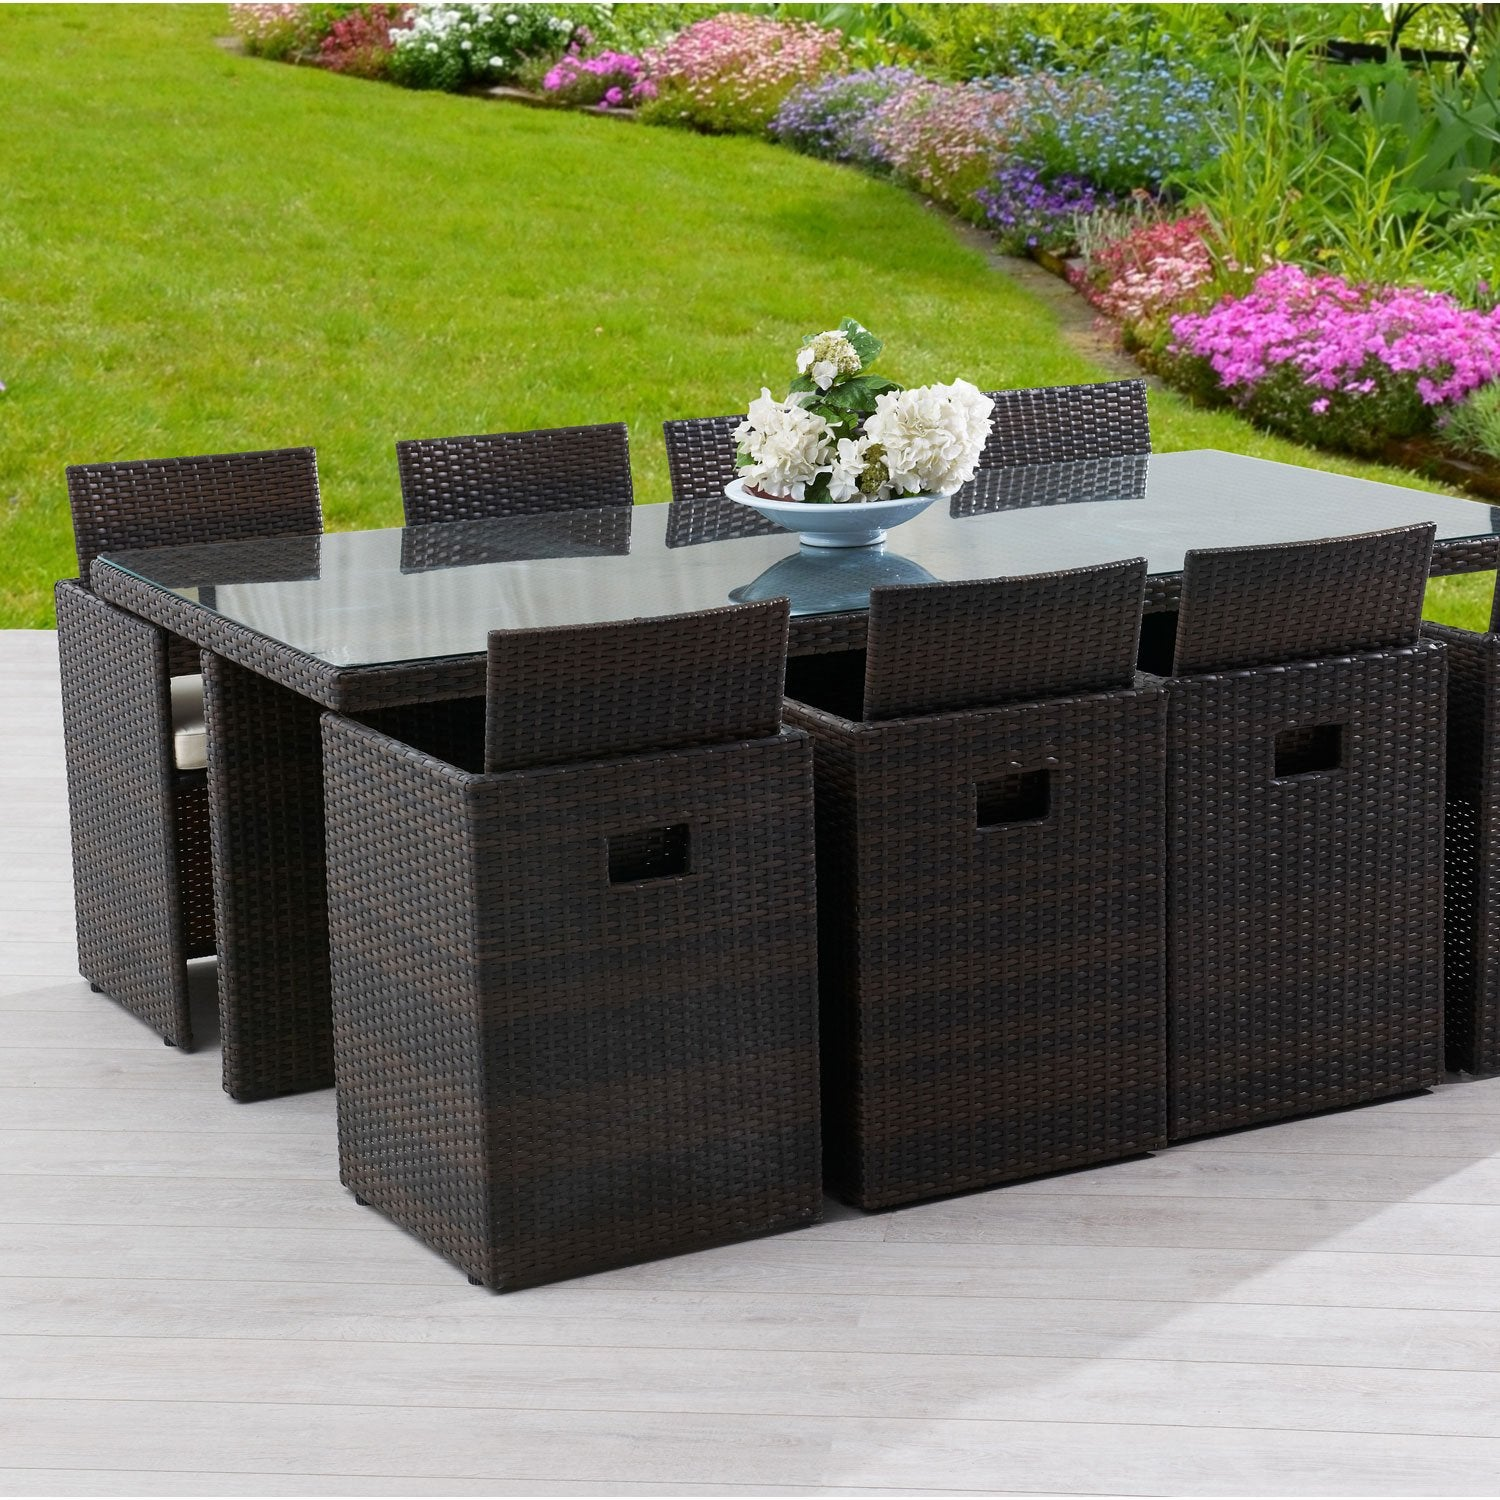 Salon de jardin encastrable r sine tress e marron 1 table for Mobilier exterieur soldes